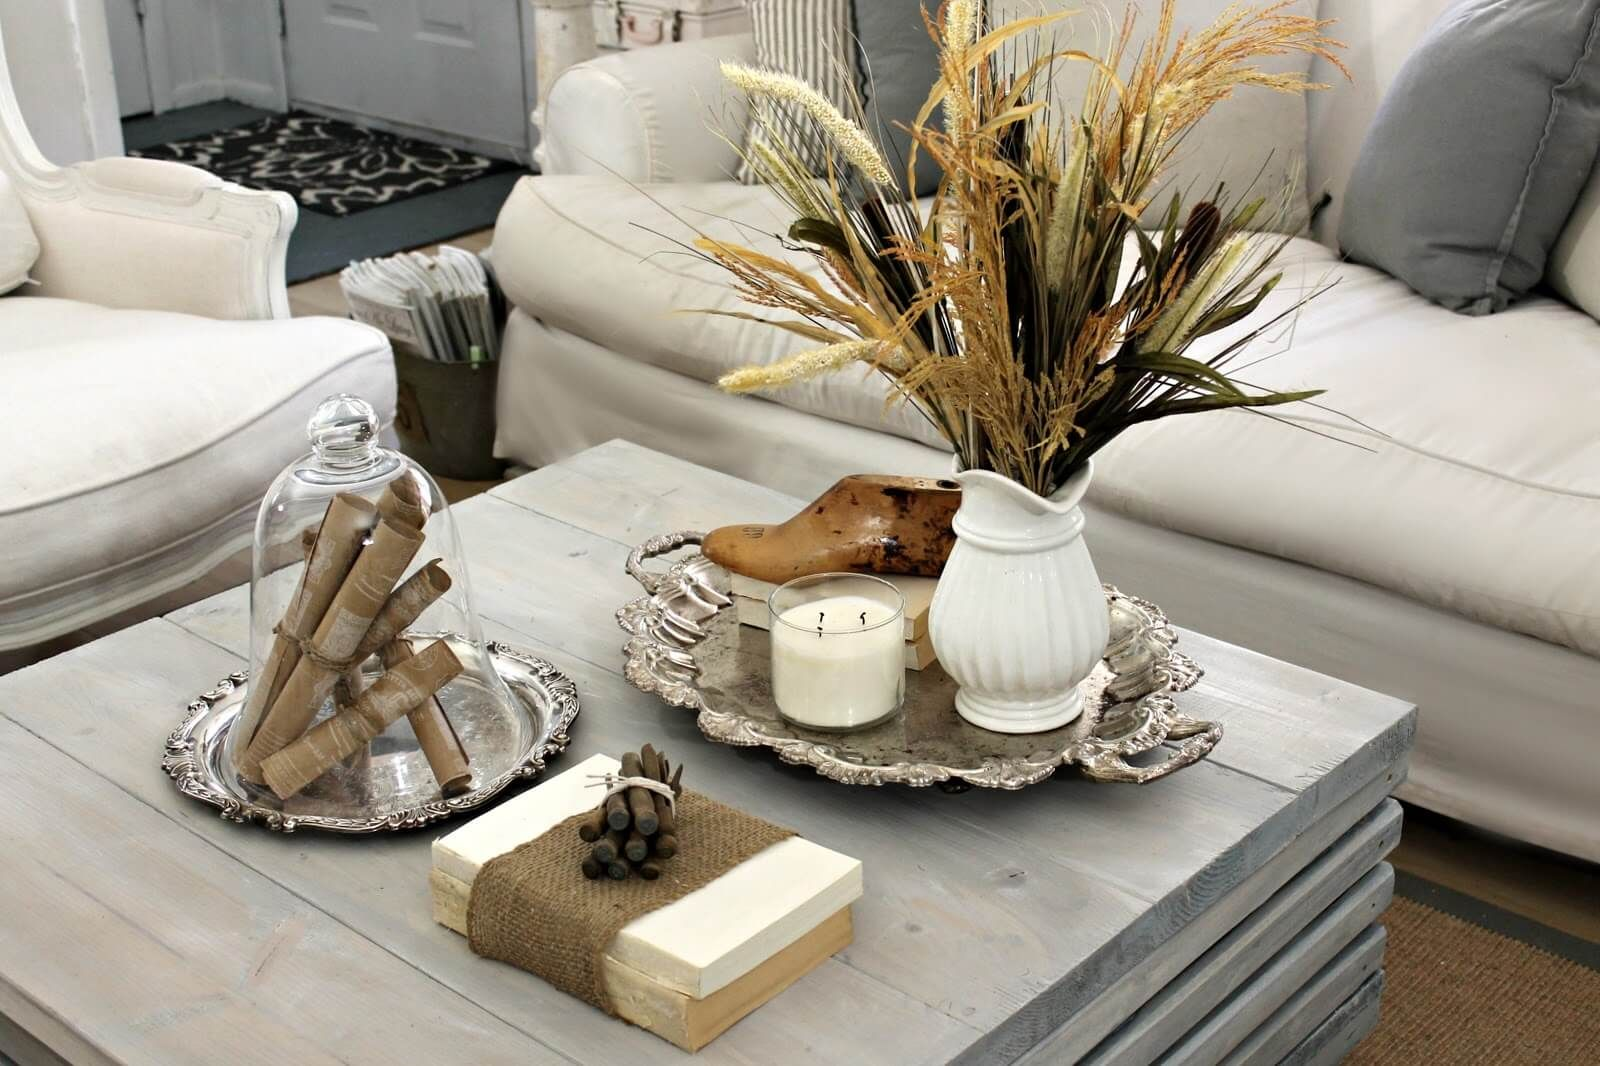 Coffee Table Decor Ideas Inspiration Driven By Decor Coffe Table Decor Coffee Table Decorating Coffee Tables [ 1350 x 900 Pixel ]